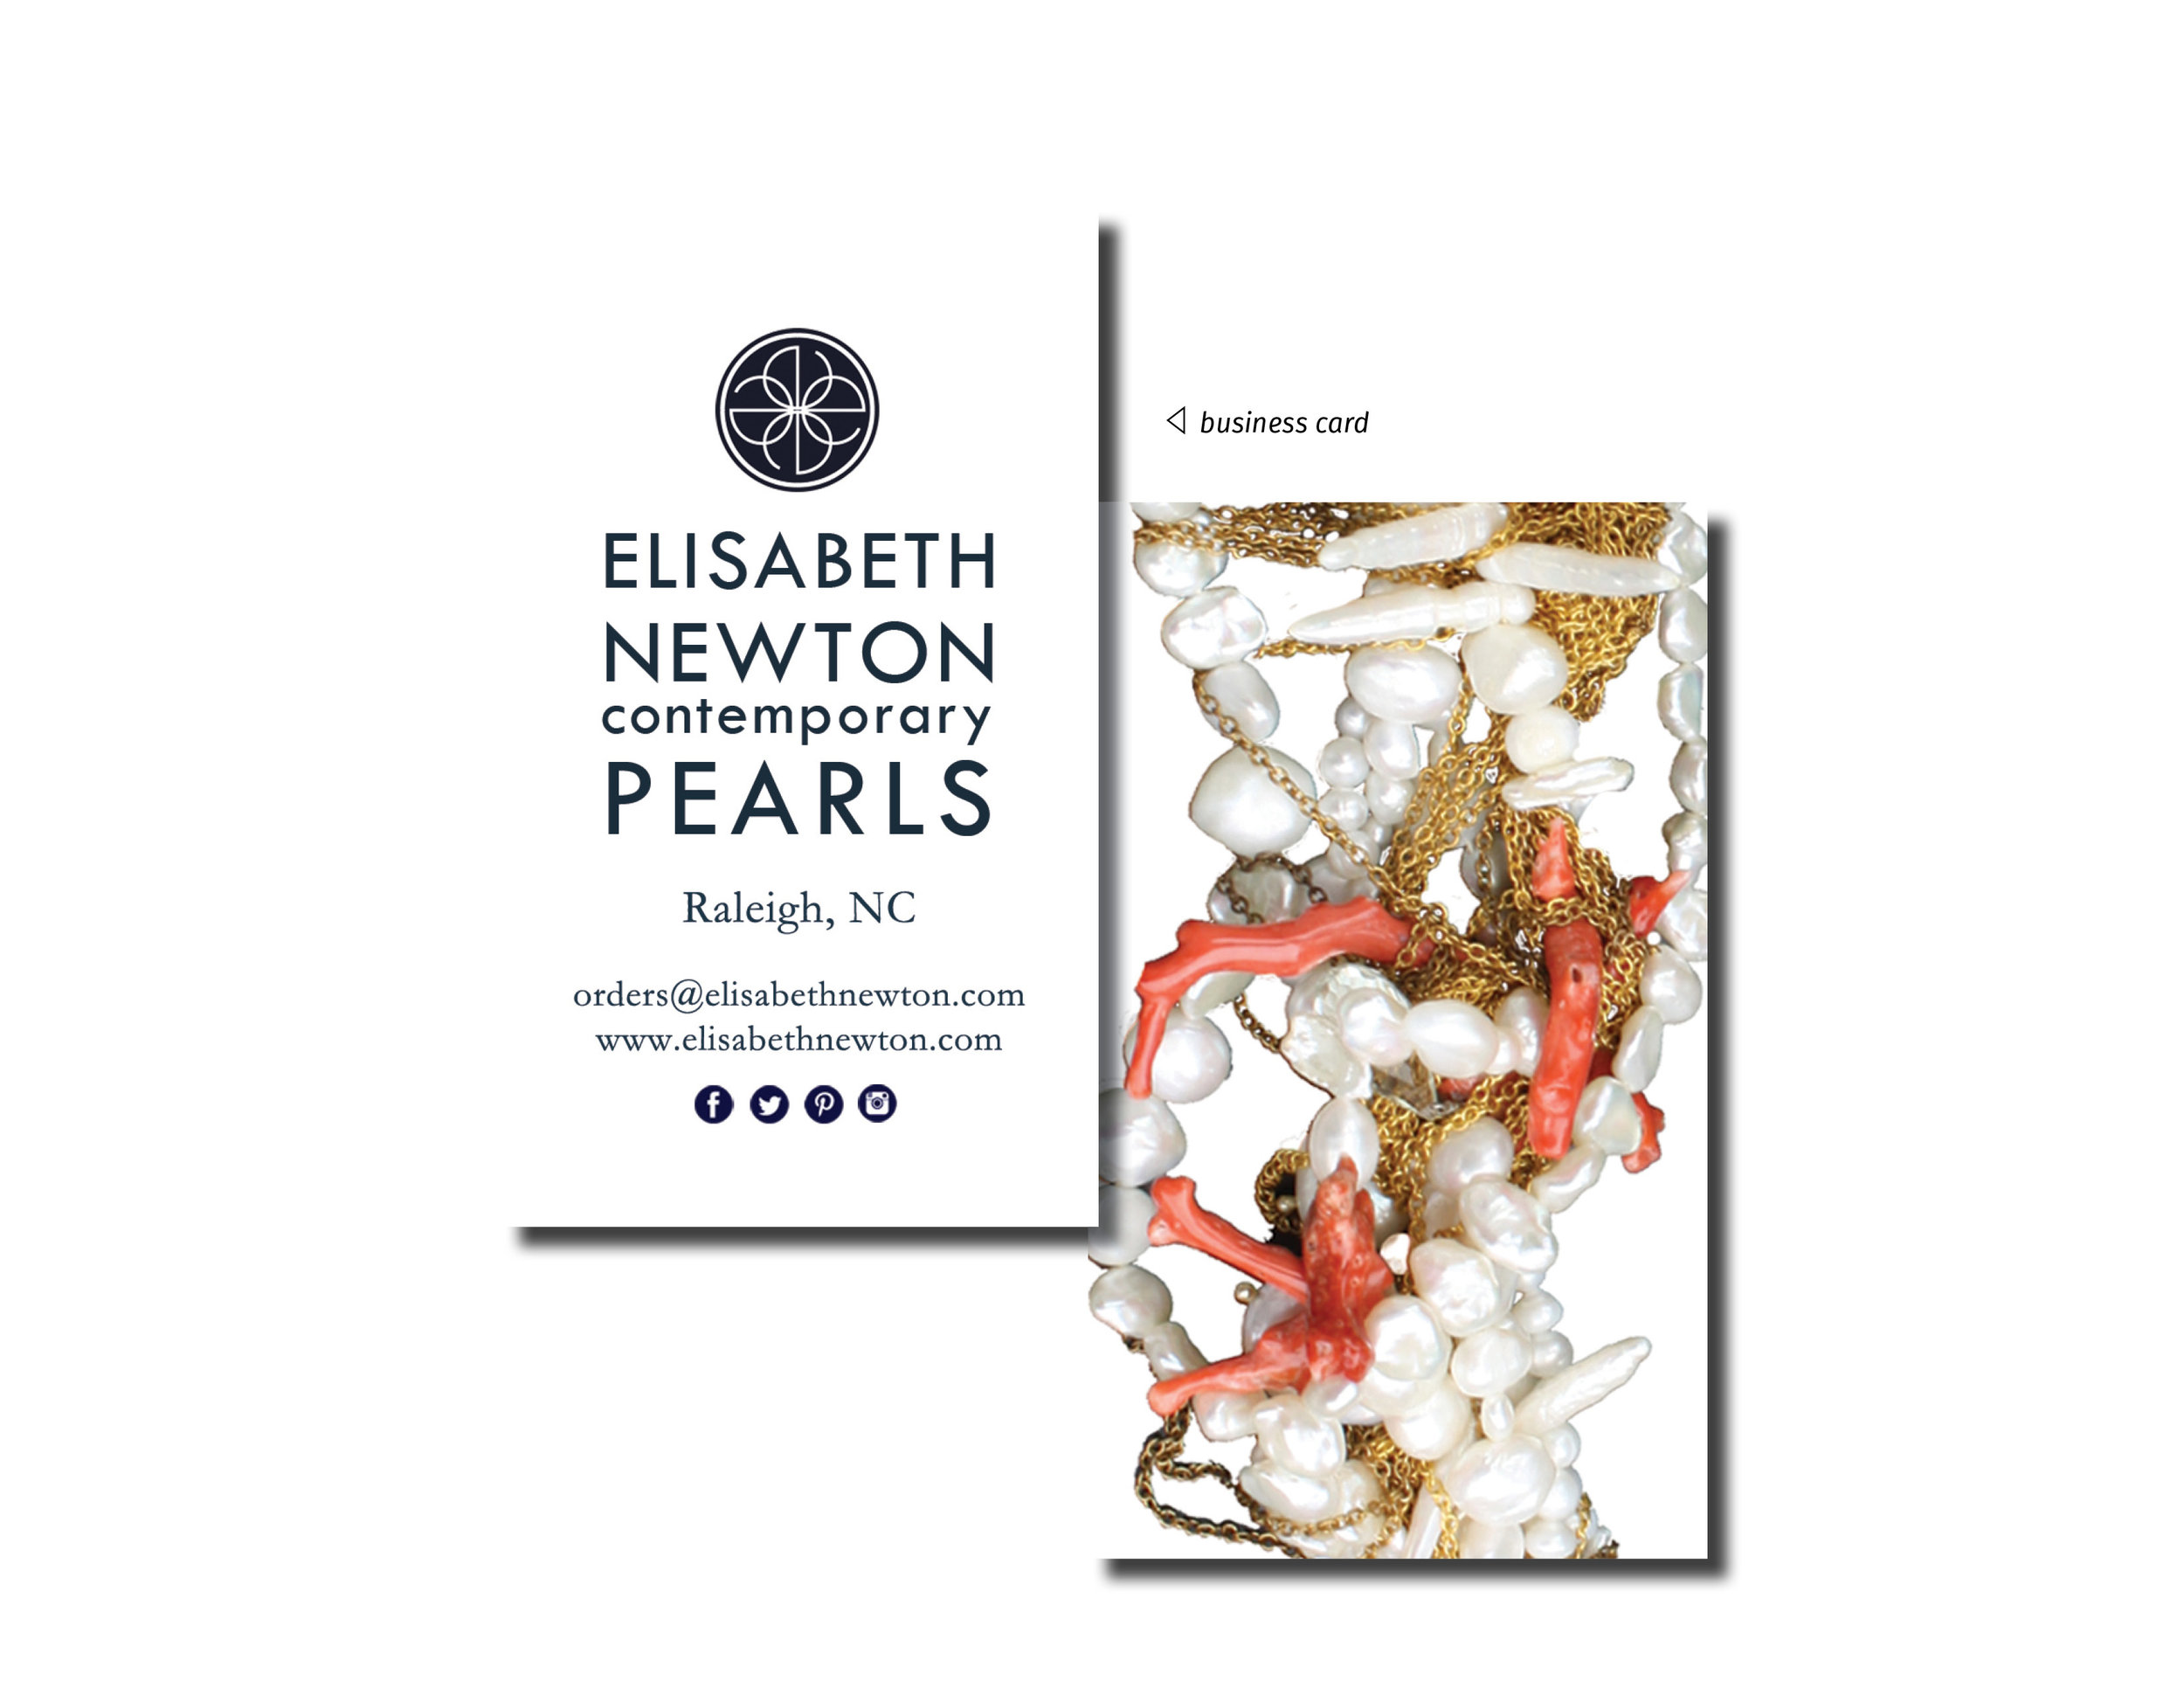 Business Cards - Elisabeth Newton Contemporary Pearls was a modern take on a traditional classic. I continued this concept for the branding and business cards, pairing traditional typography with modern photography and typeface spacing.